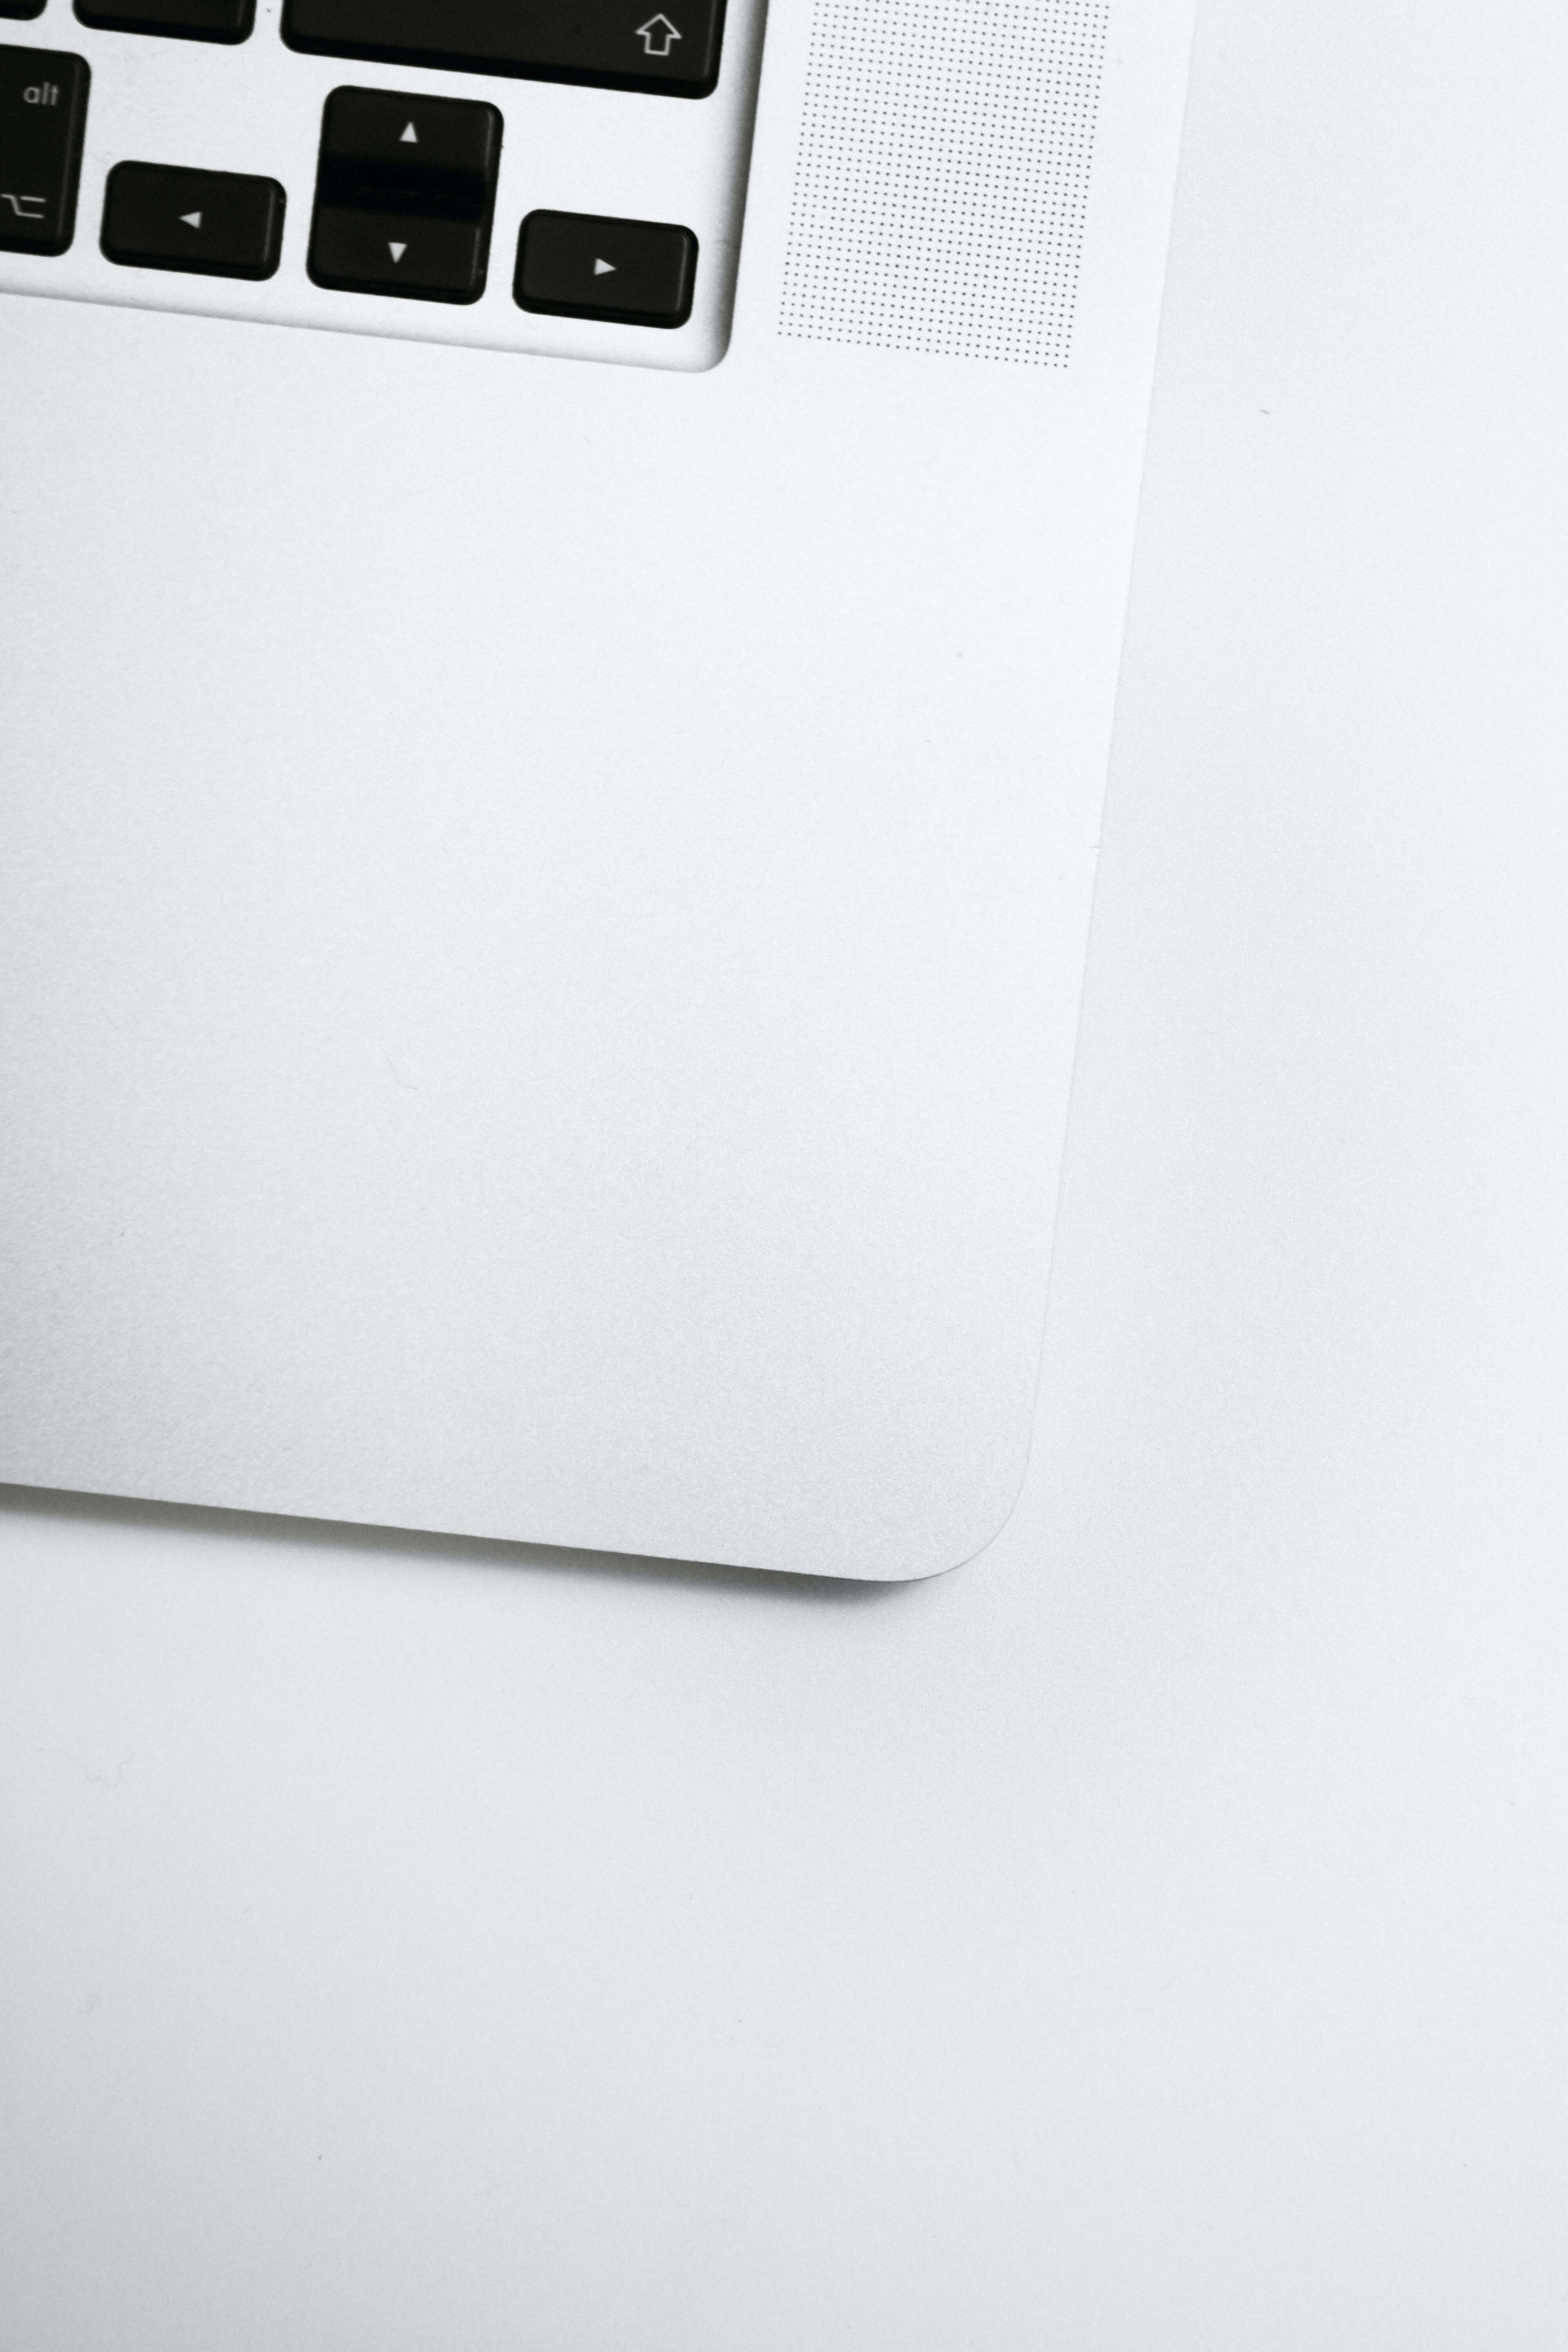 web-design-agency-blog-photography-space66